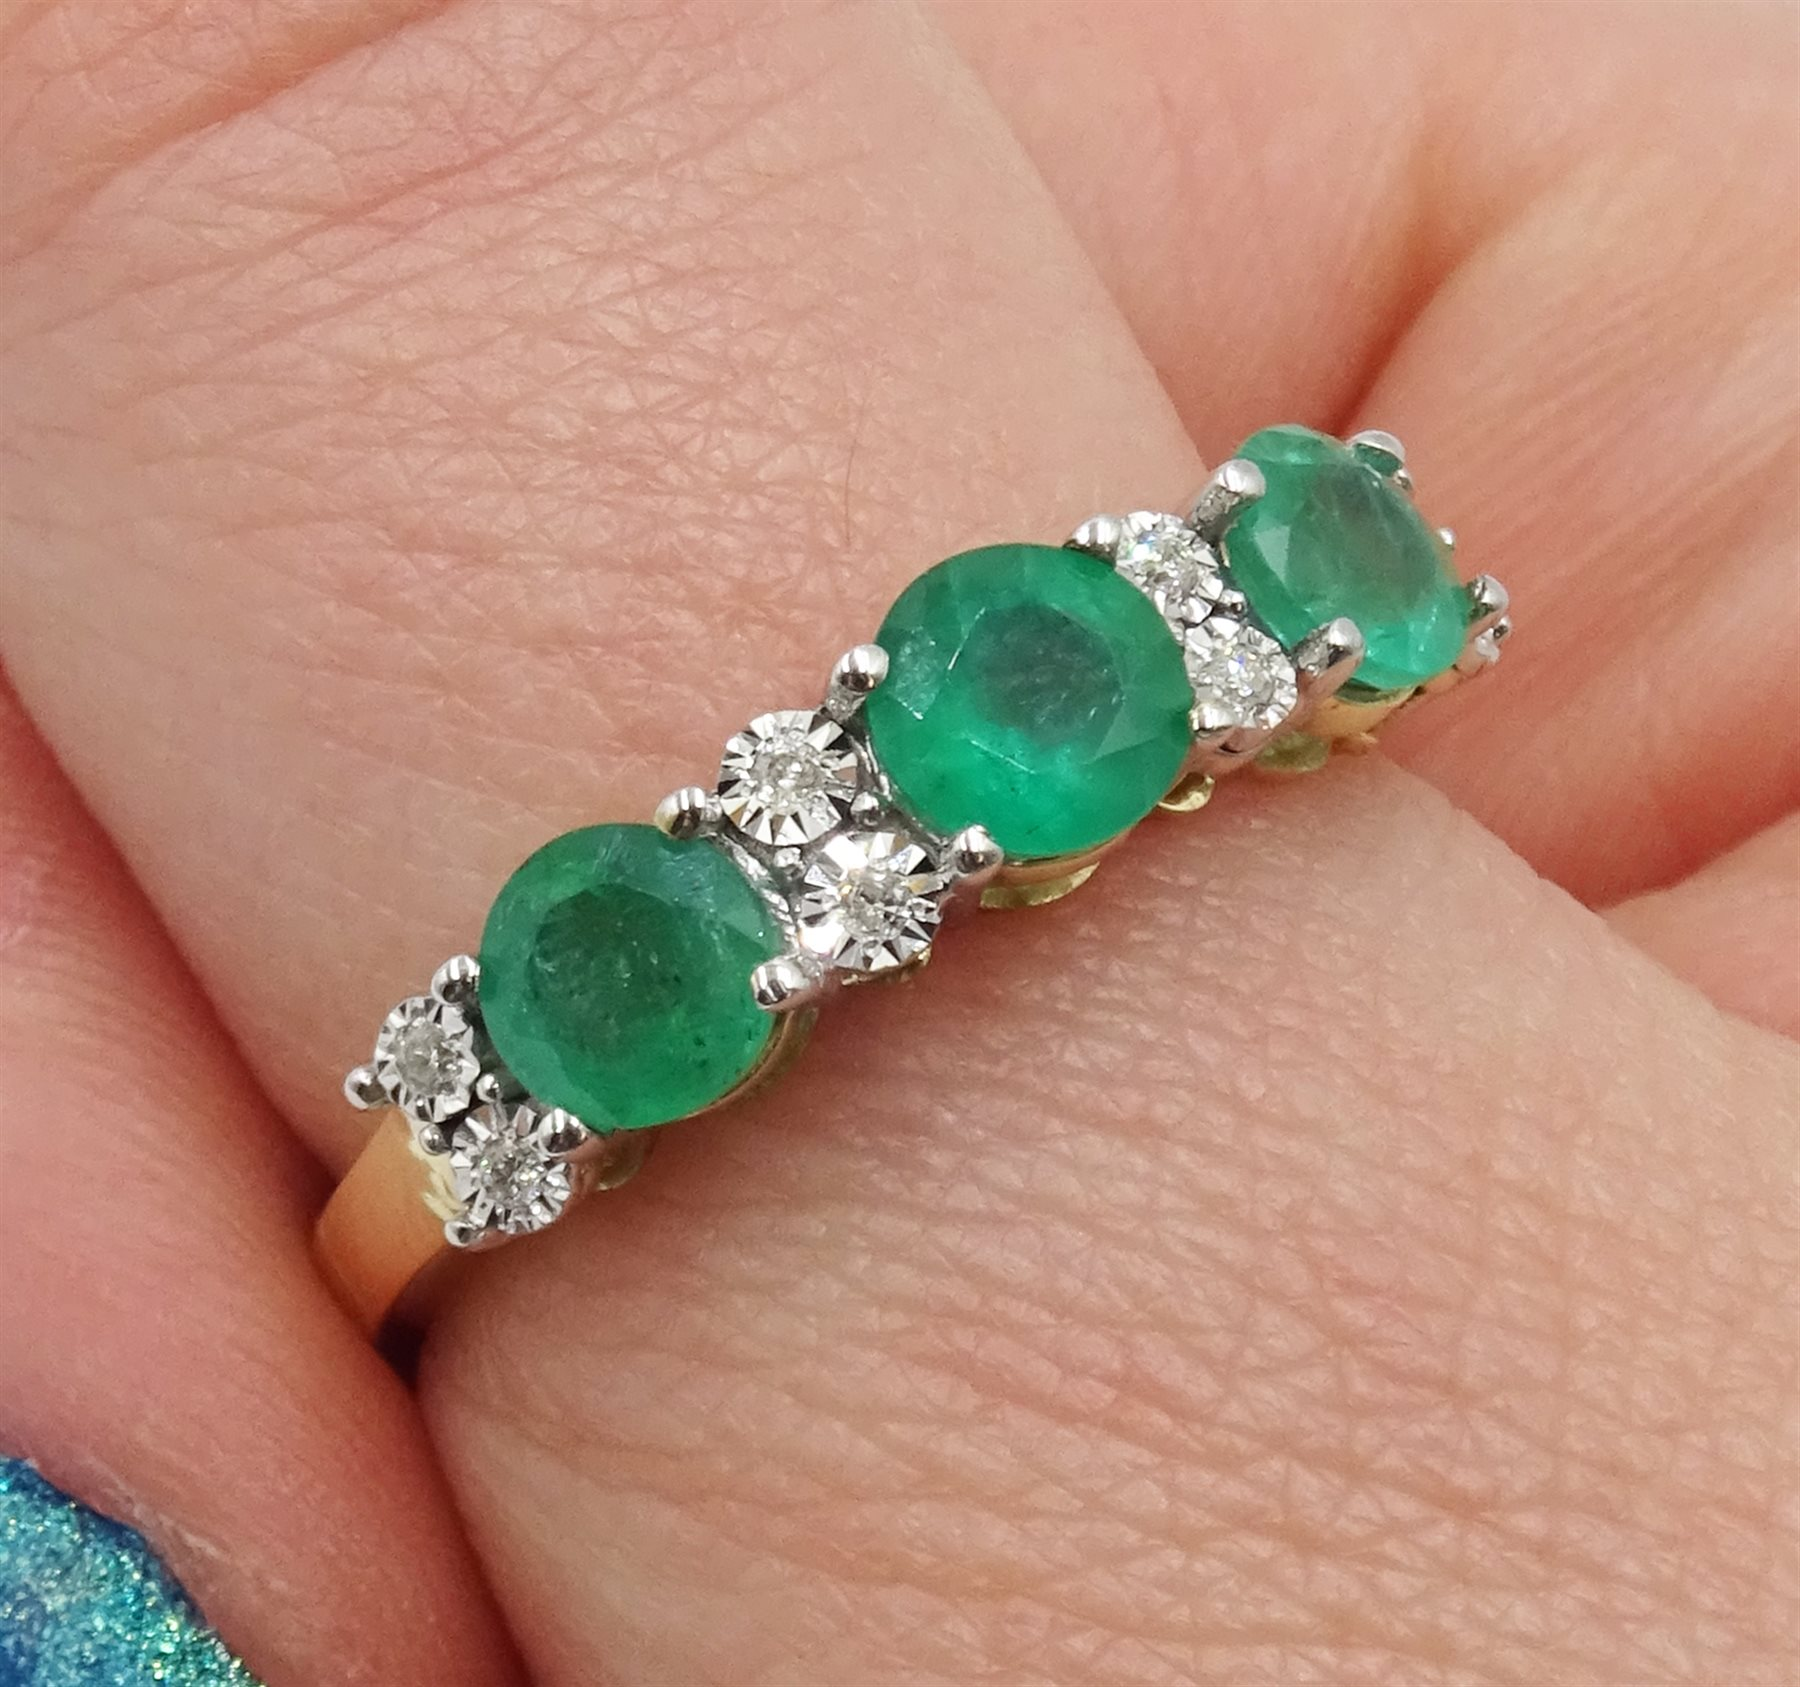 9ct gold round emerald and diamond ring, stamped 375, total emerald weight approx 1.30 carat - Image 2 of 4